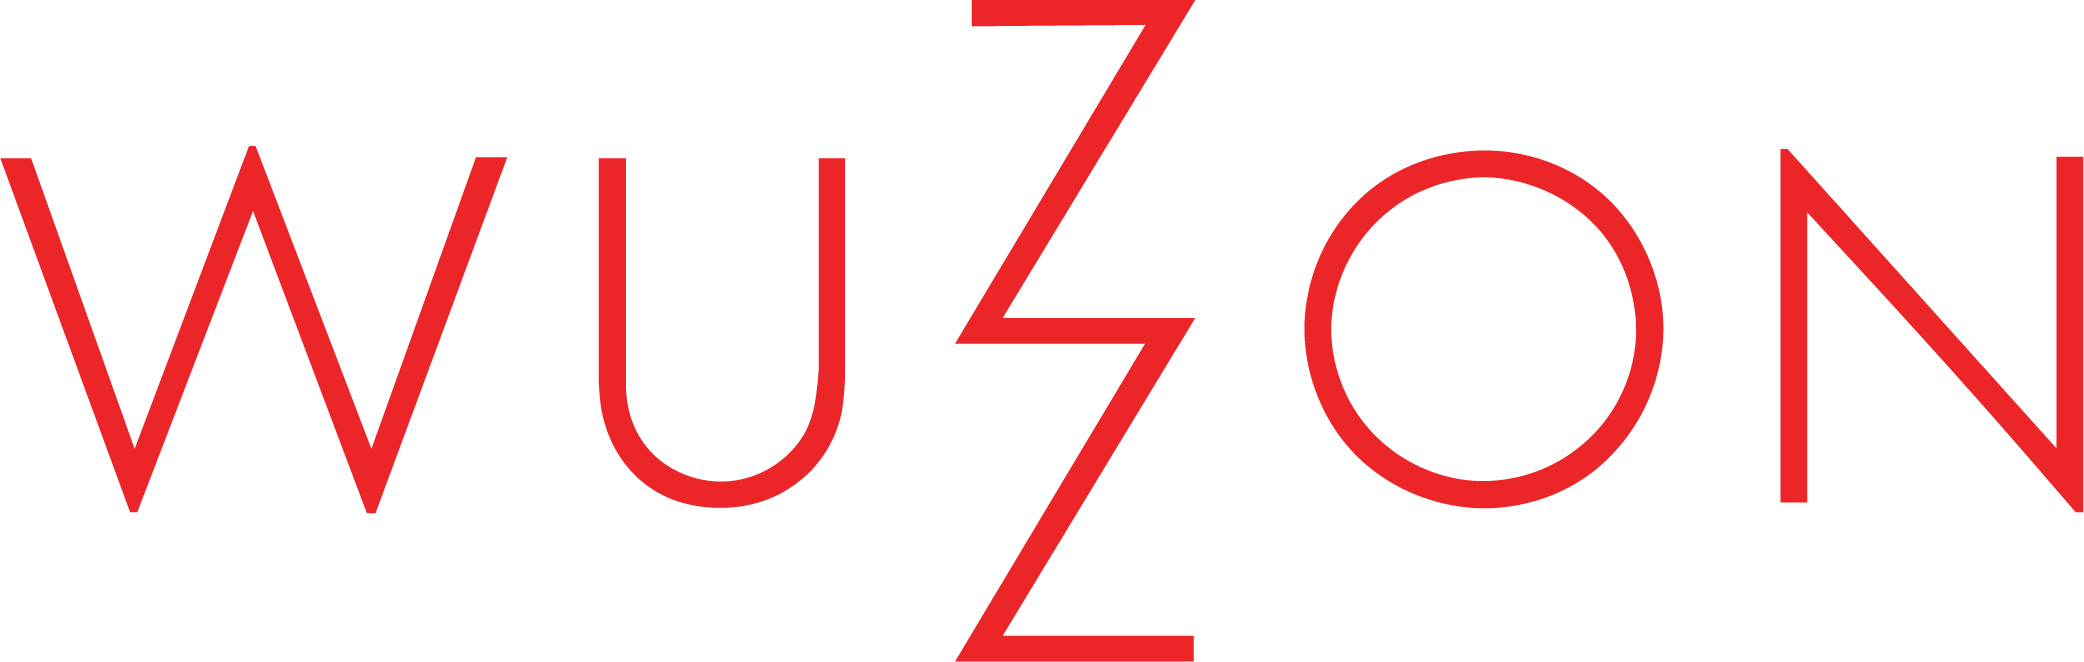 logo_without_tagline.png